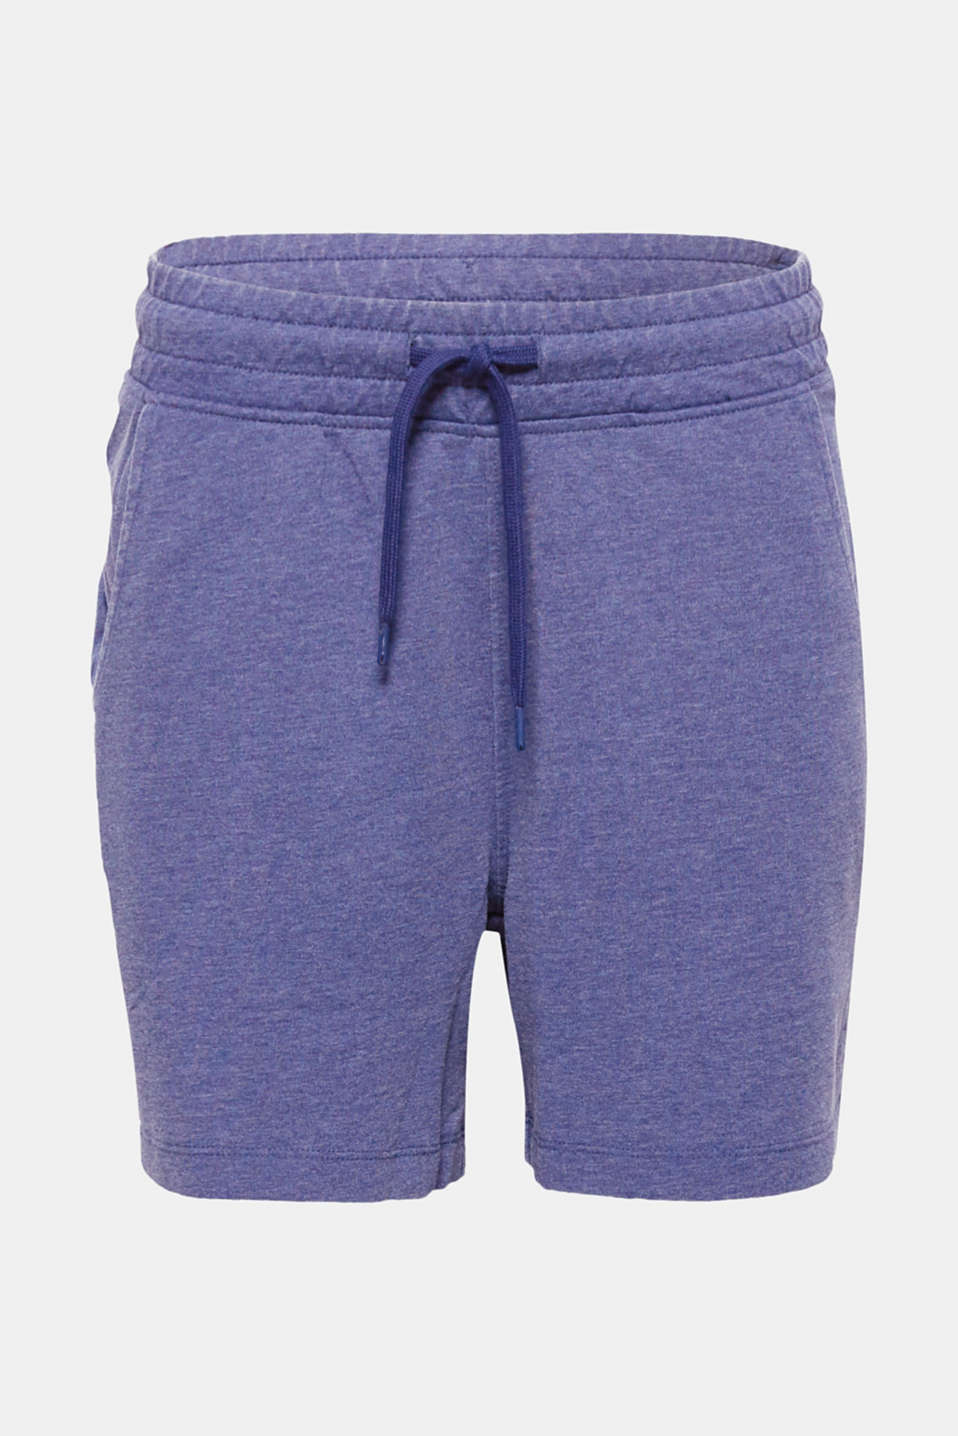 For casual wear and sports: The mock, airy burnt-out look gives these lightweight sweat shorts their casual charm!